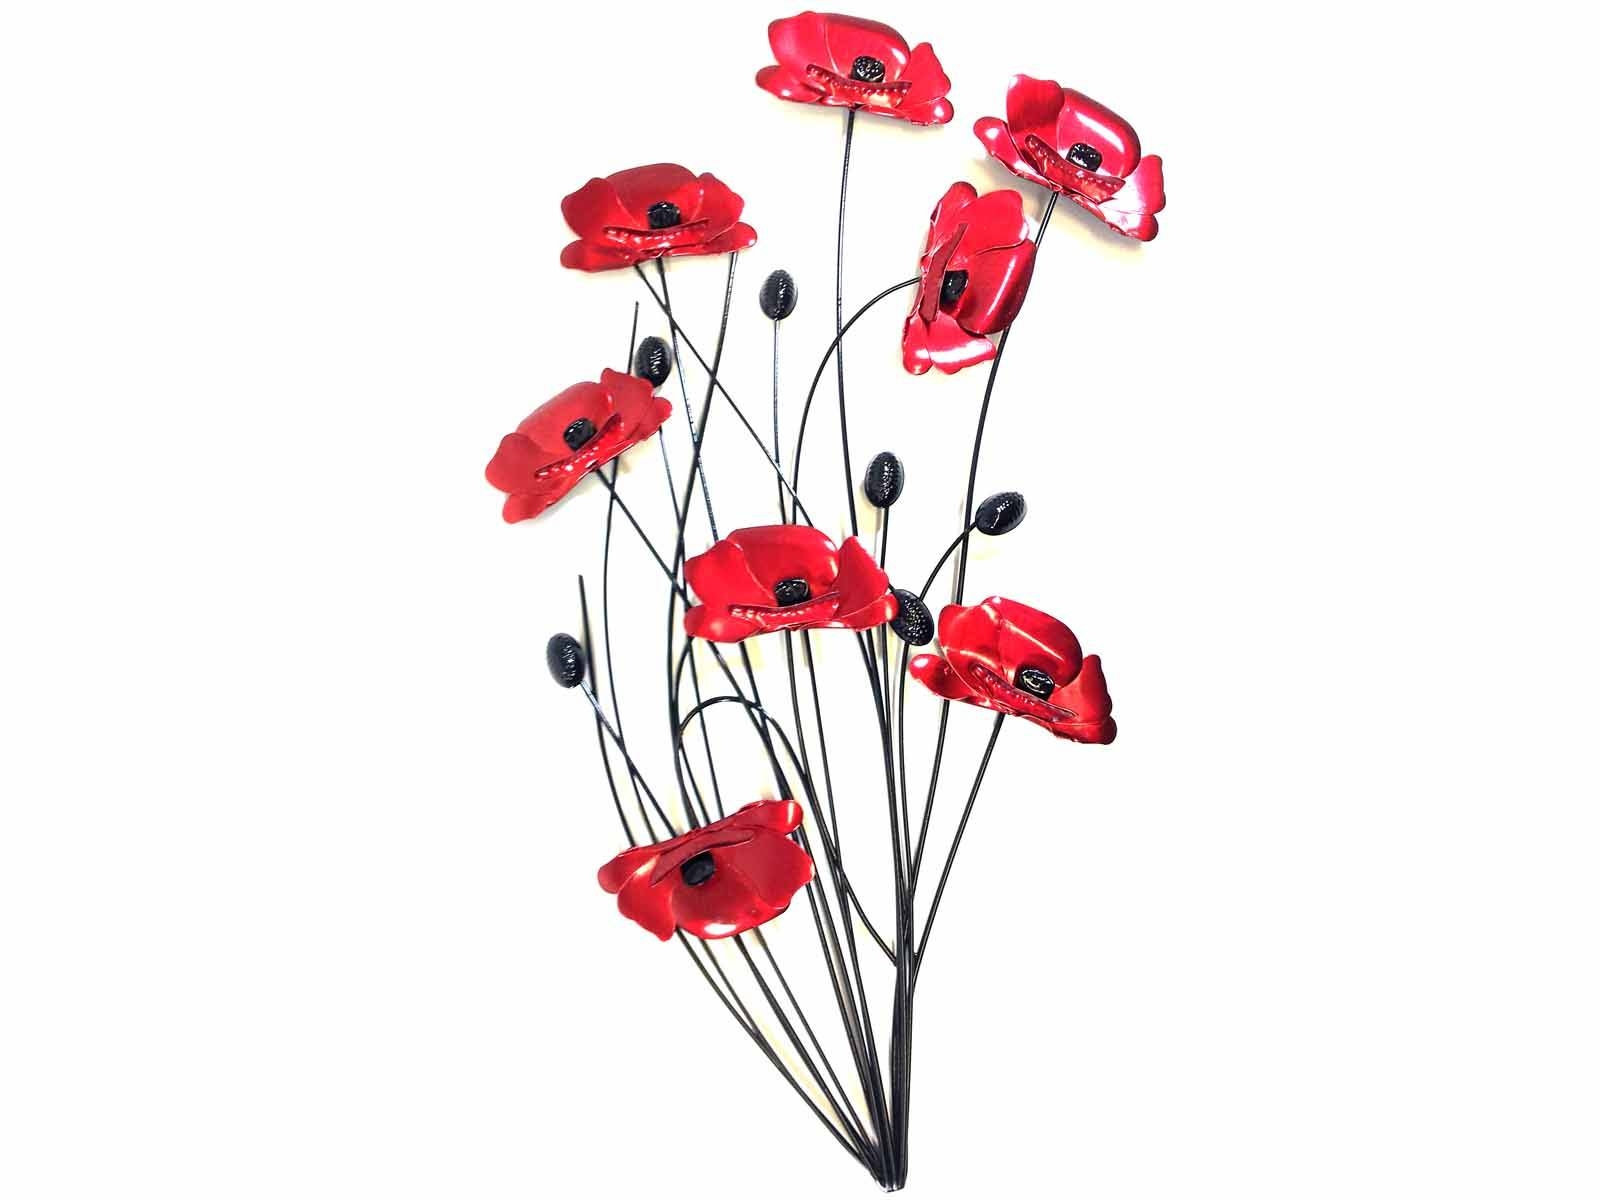 Metal Wall Art – Poppy Flower Bunch Black Stems With Most Recent Red And Black Metal Wall Art (View 7 of 20)